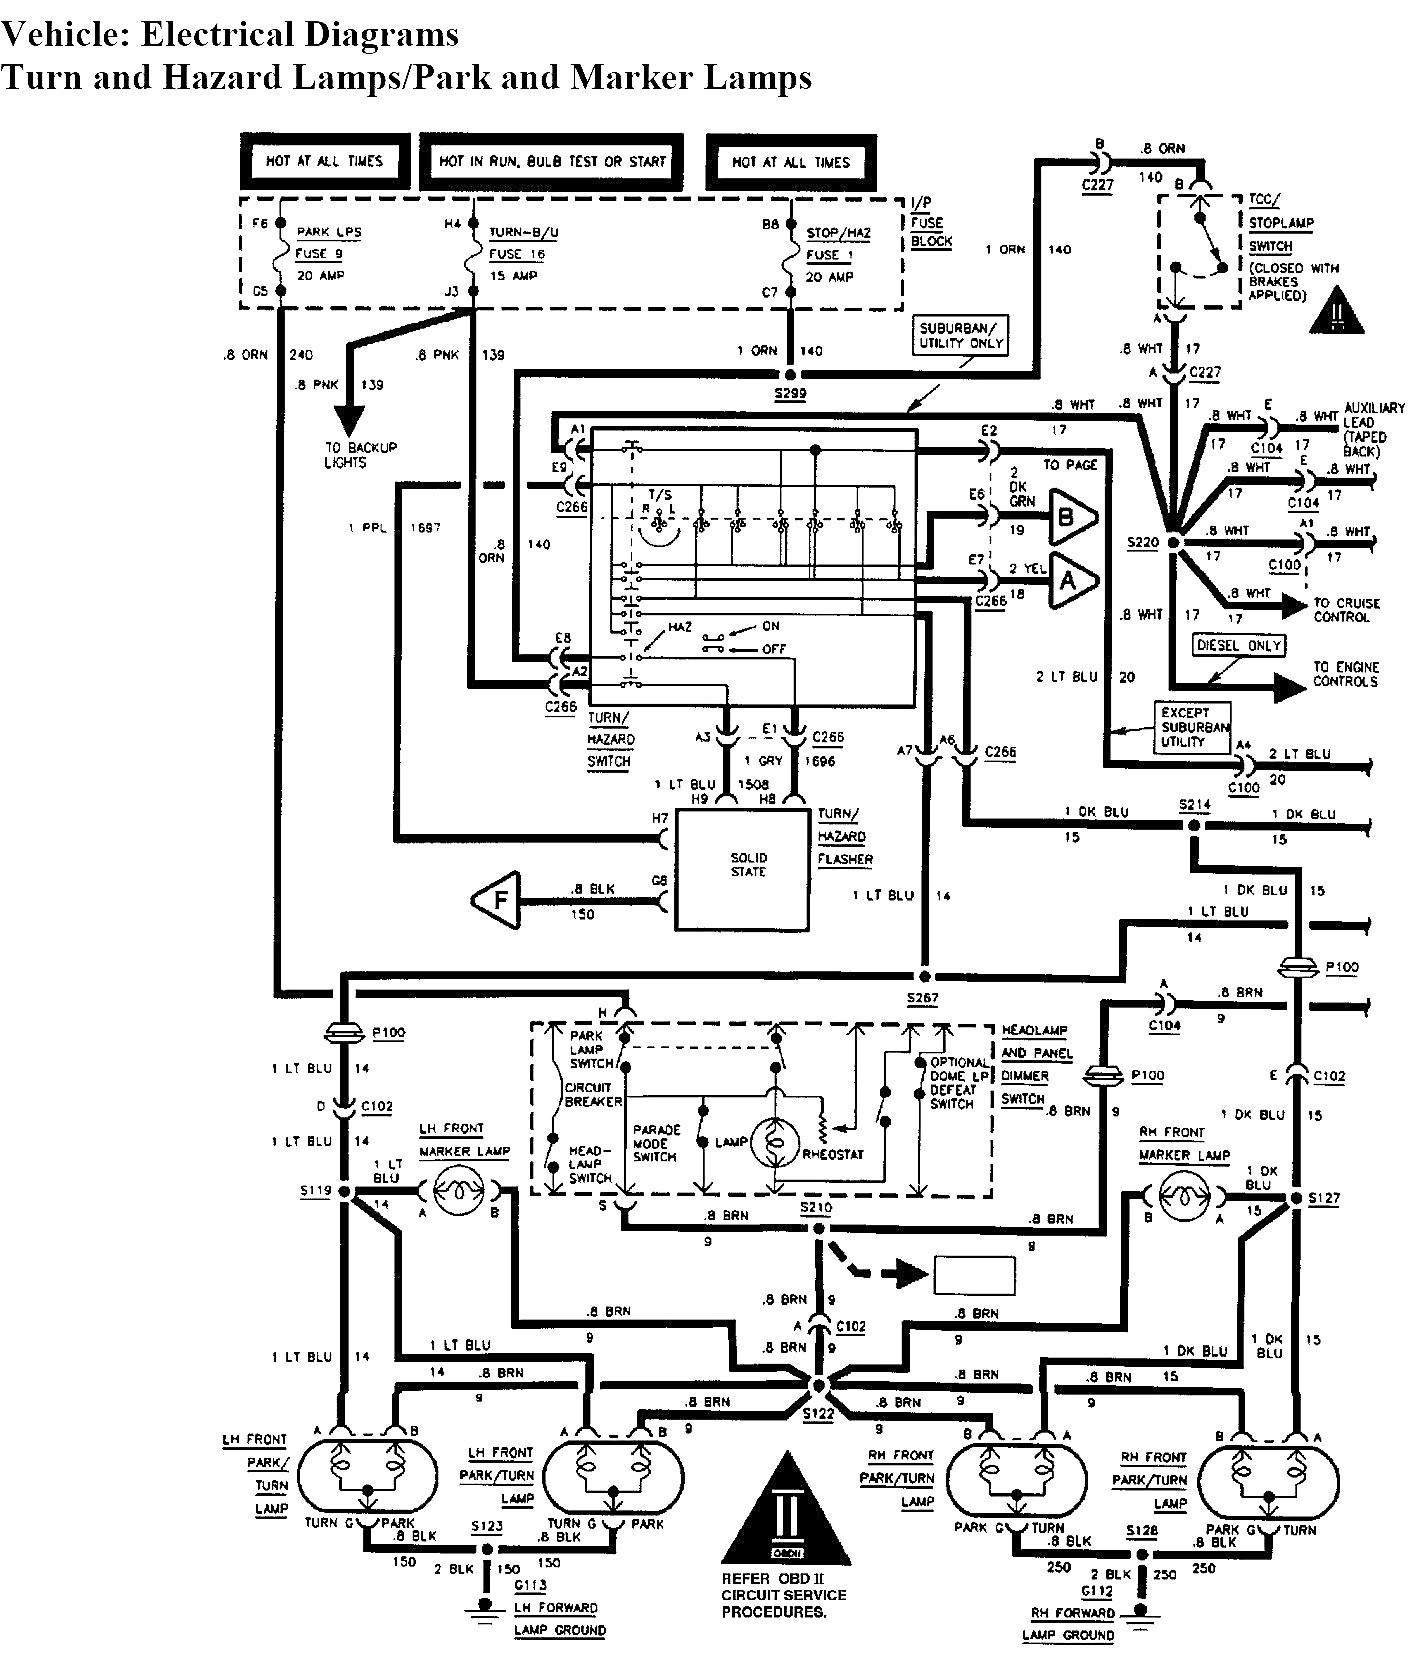 2001 s10 brake light wiring diagram download wiring diagrams u2022 rh wiringdiagramblog today